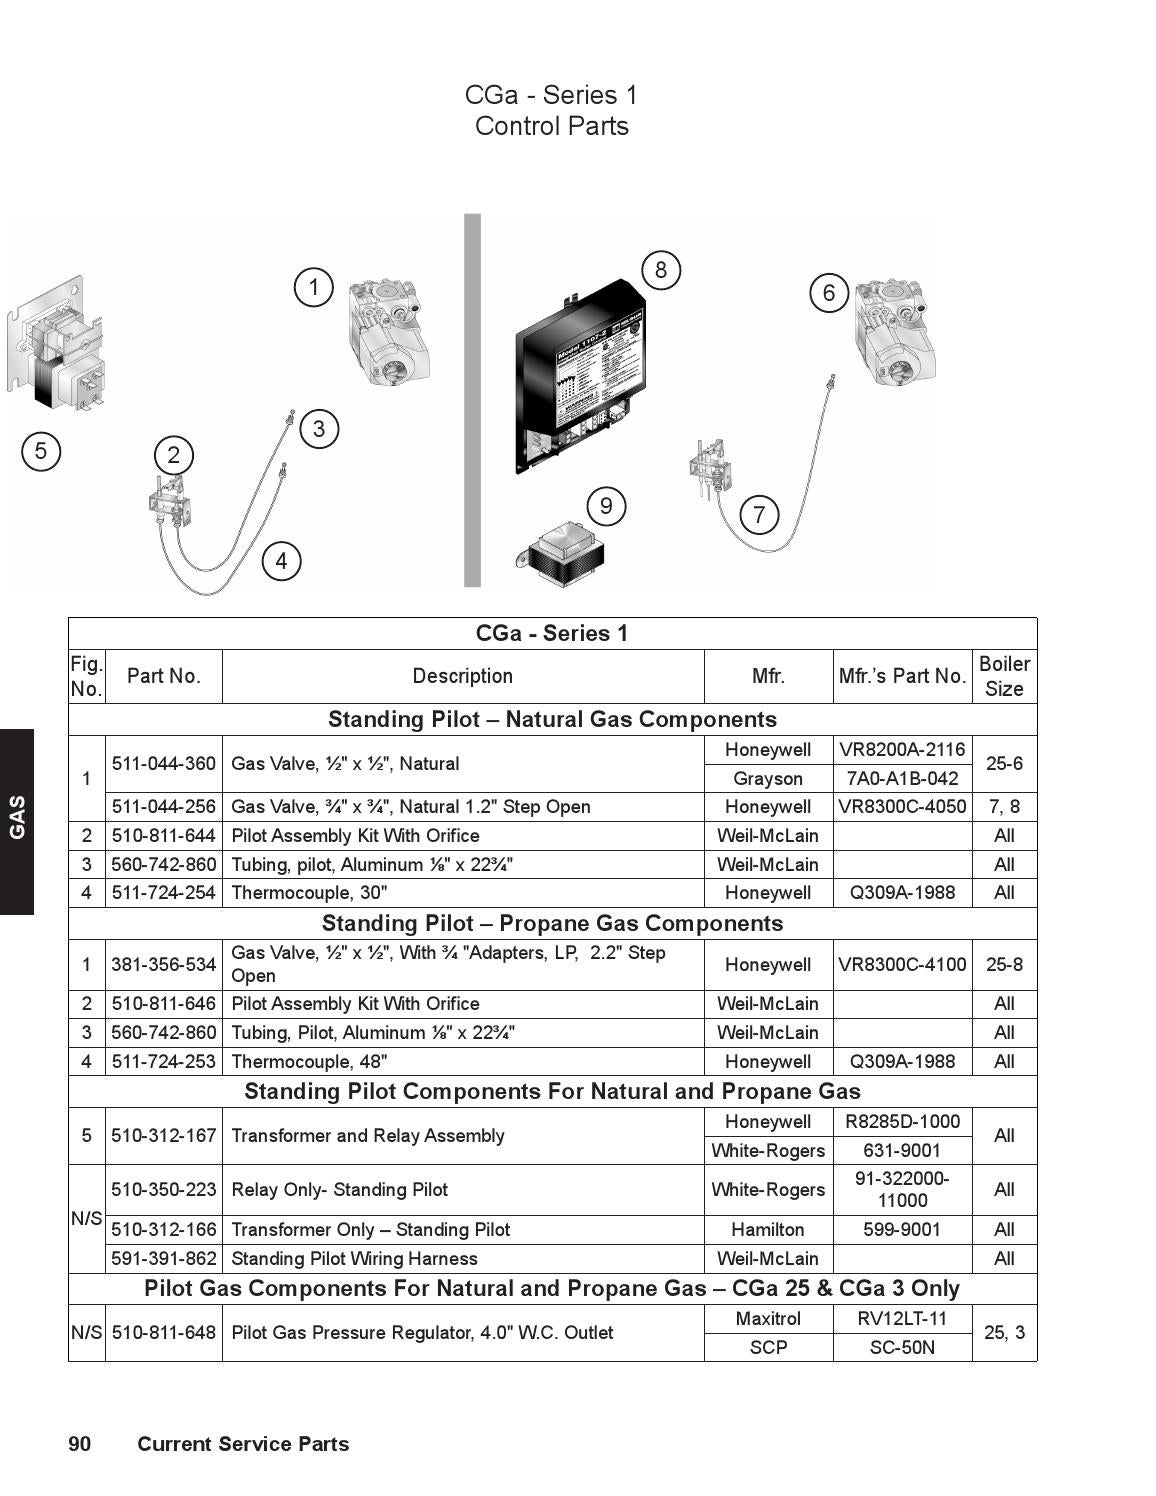 r8285d 1000 wiring r8285d image wiring diagram 2015 service parts catalog by weil mclain page 90 issuu on r8285d 1000 wiring